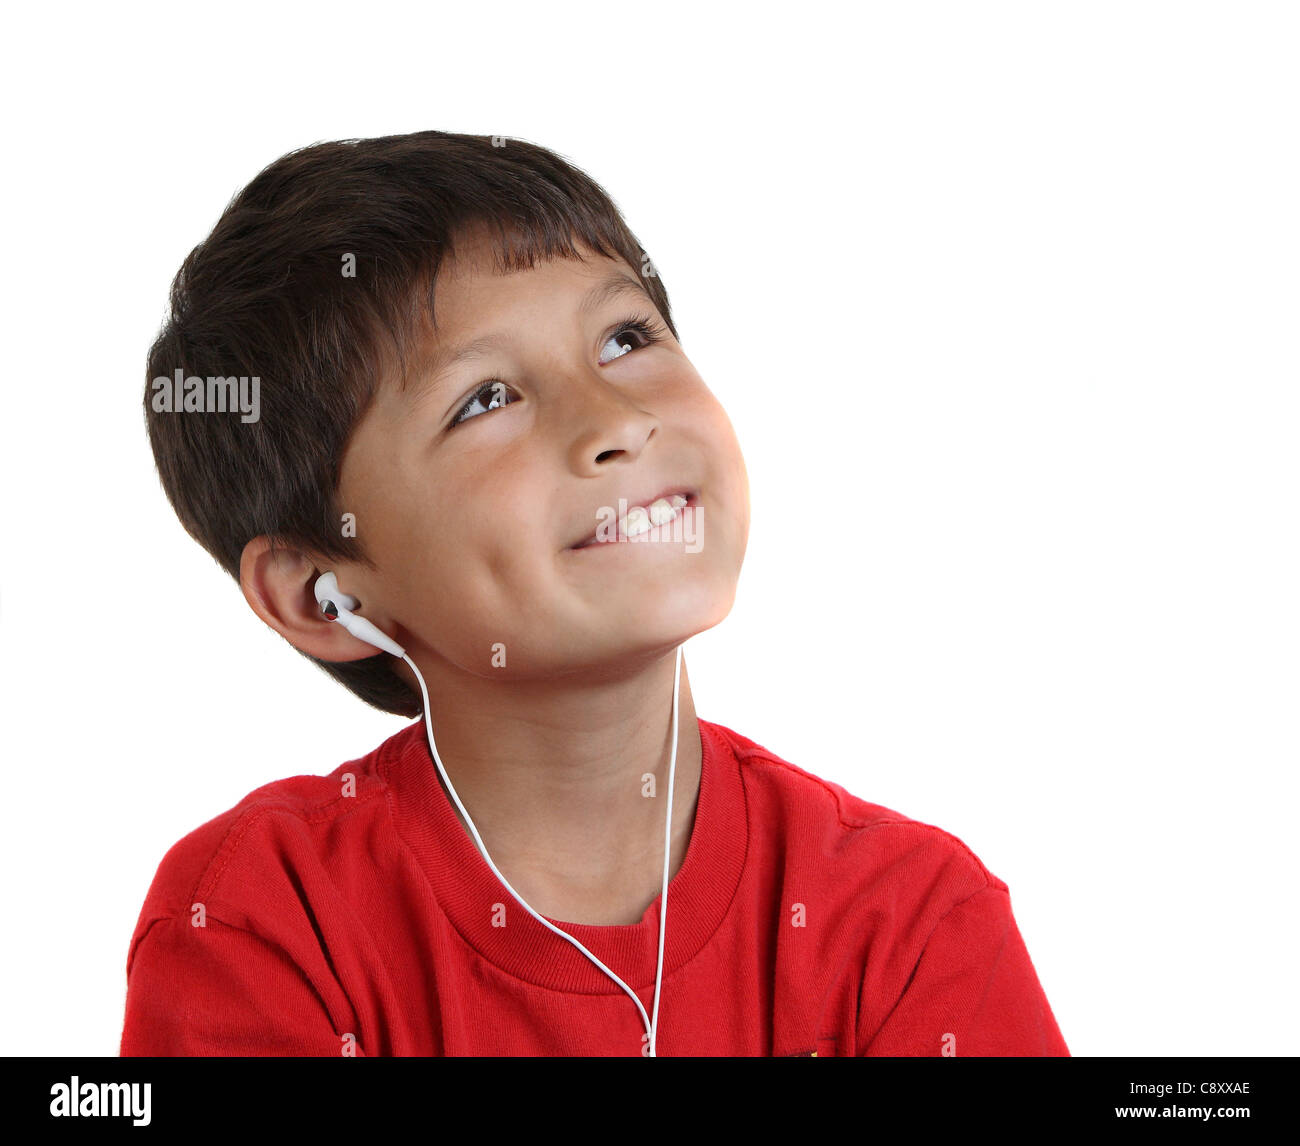 Young smiling happy boy with headphones on white background with copy space to right - Stock Image